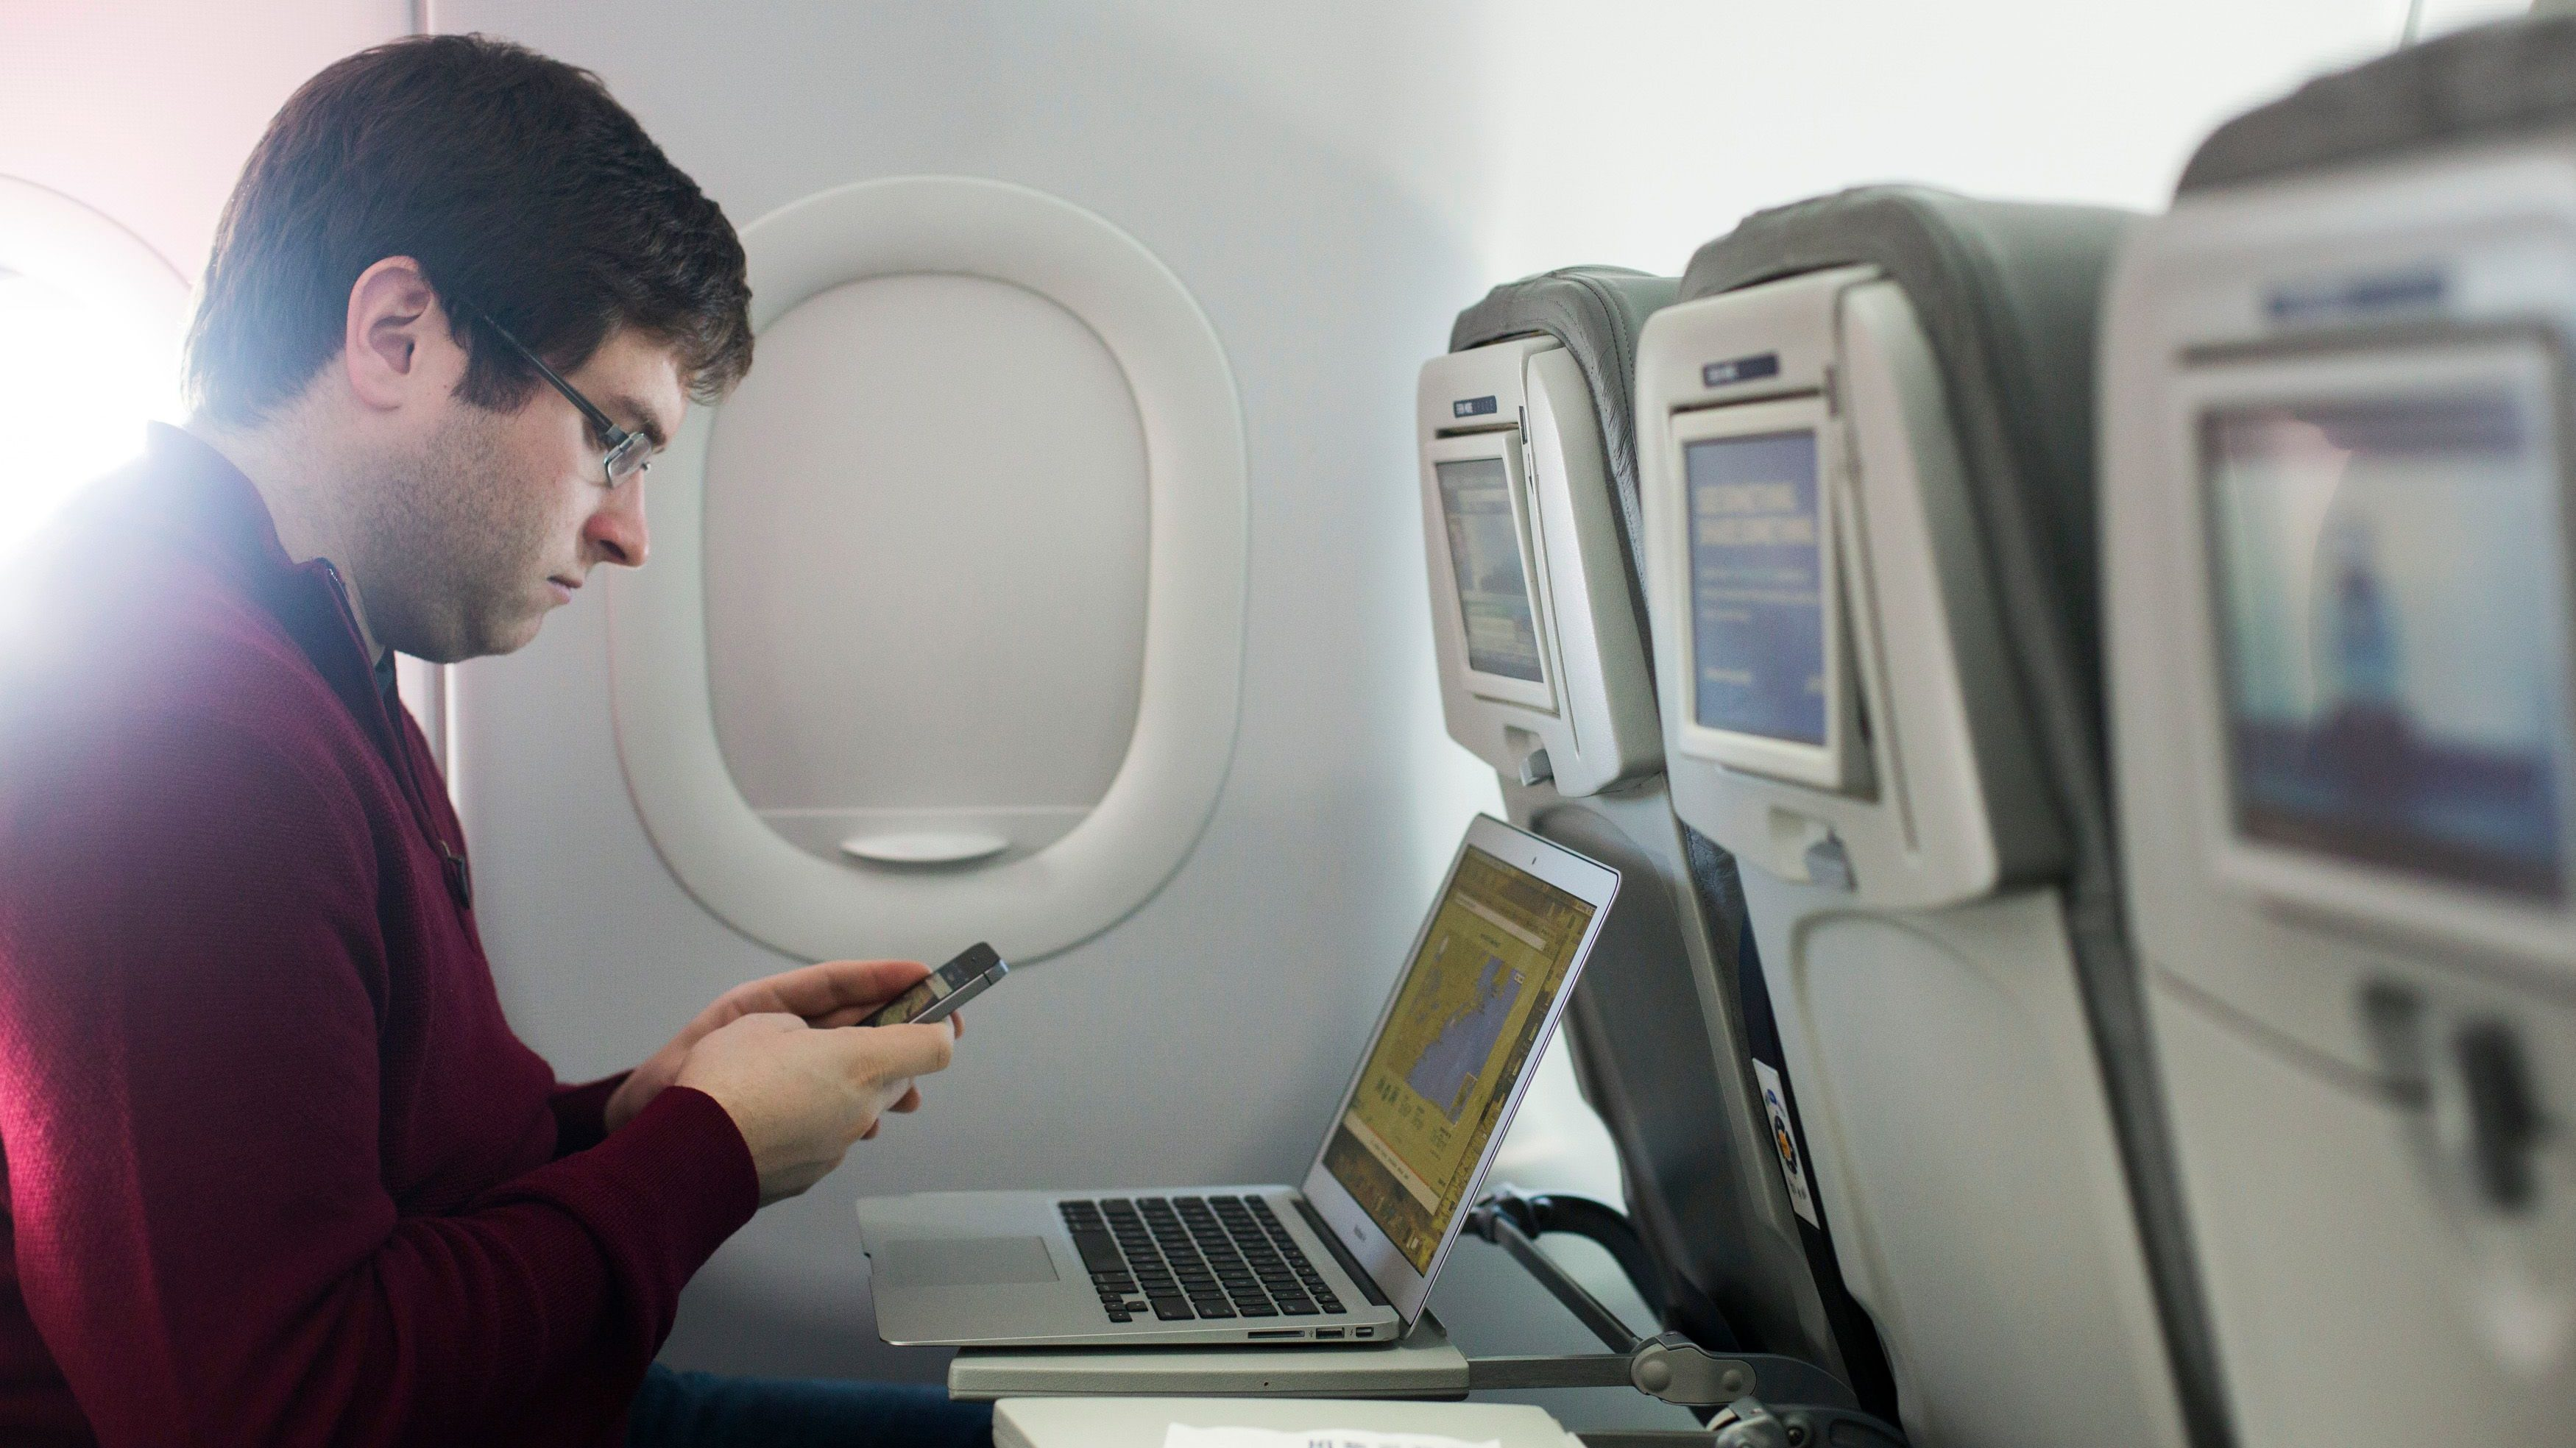 Telecom Commission clears proposal for in-flight mobile services